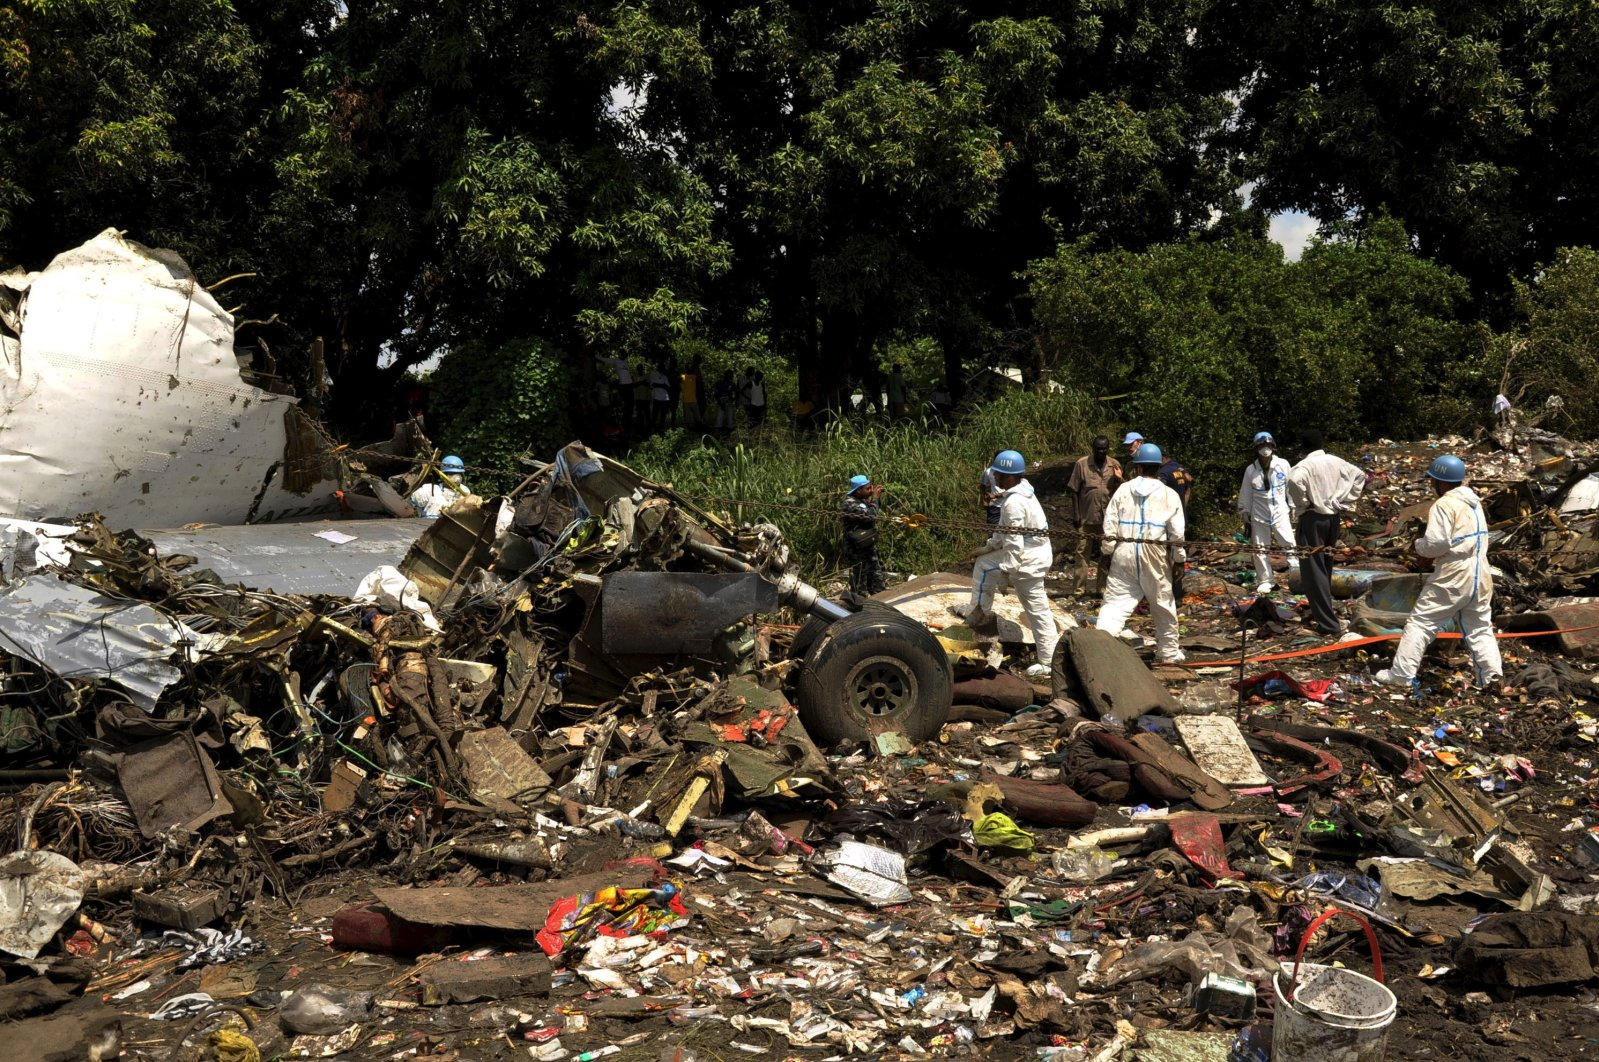 United Nations aviation experts investigate the wreckage of a cargo airplane that crashed after take off near Juba Airport in South Sudan on Nov. 5, 2015. (Reuters File Photo)